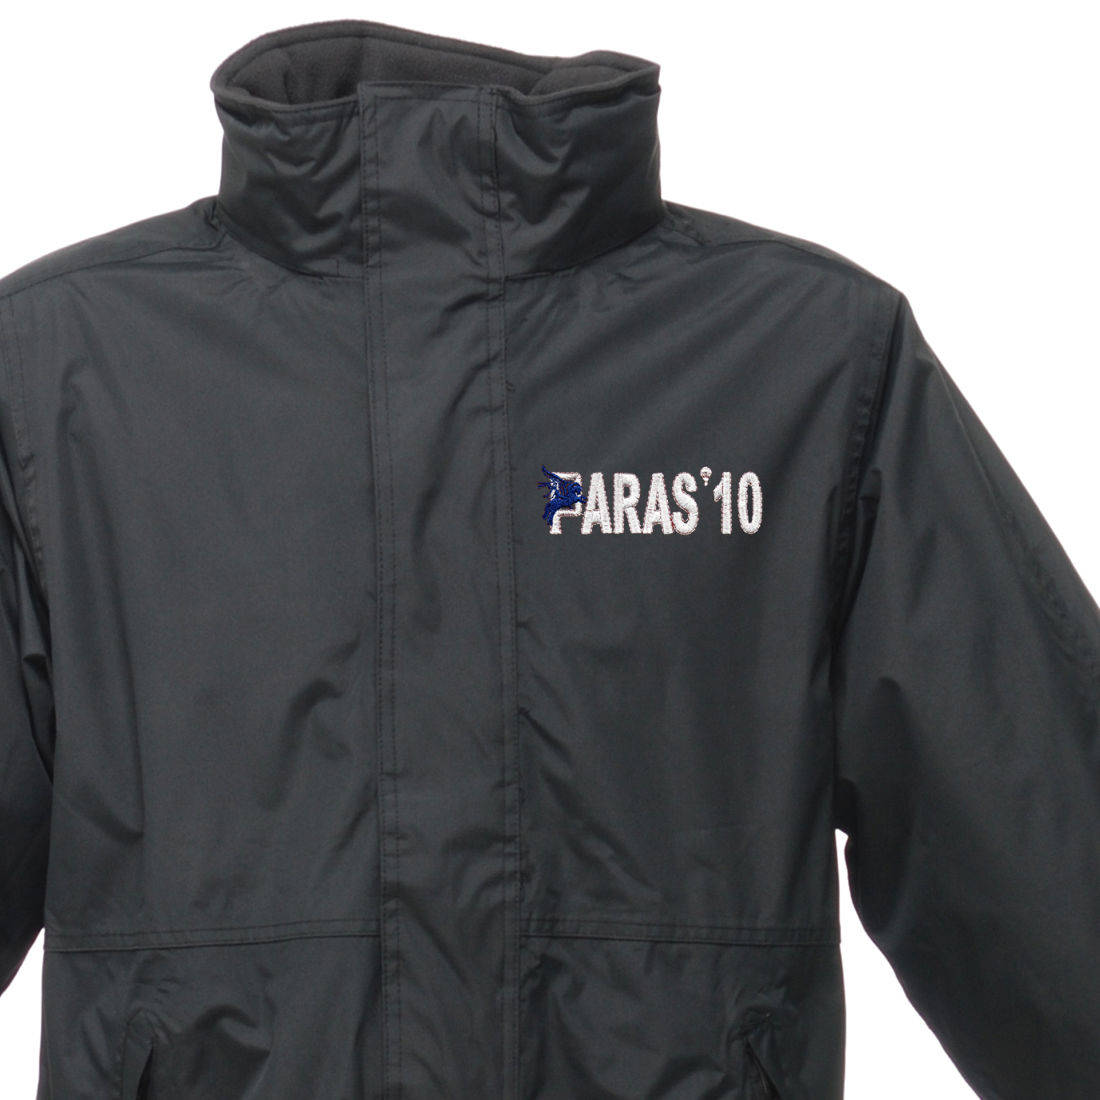 Weatherproof Jacket - Black - Paras 10